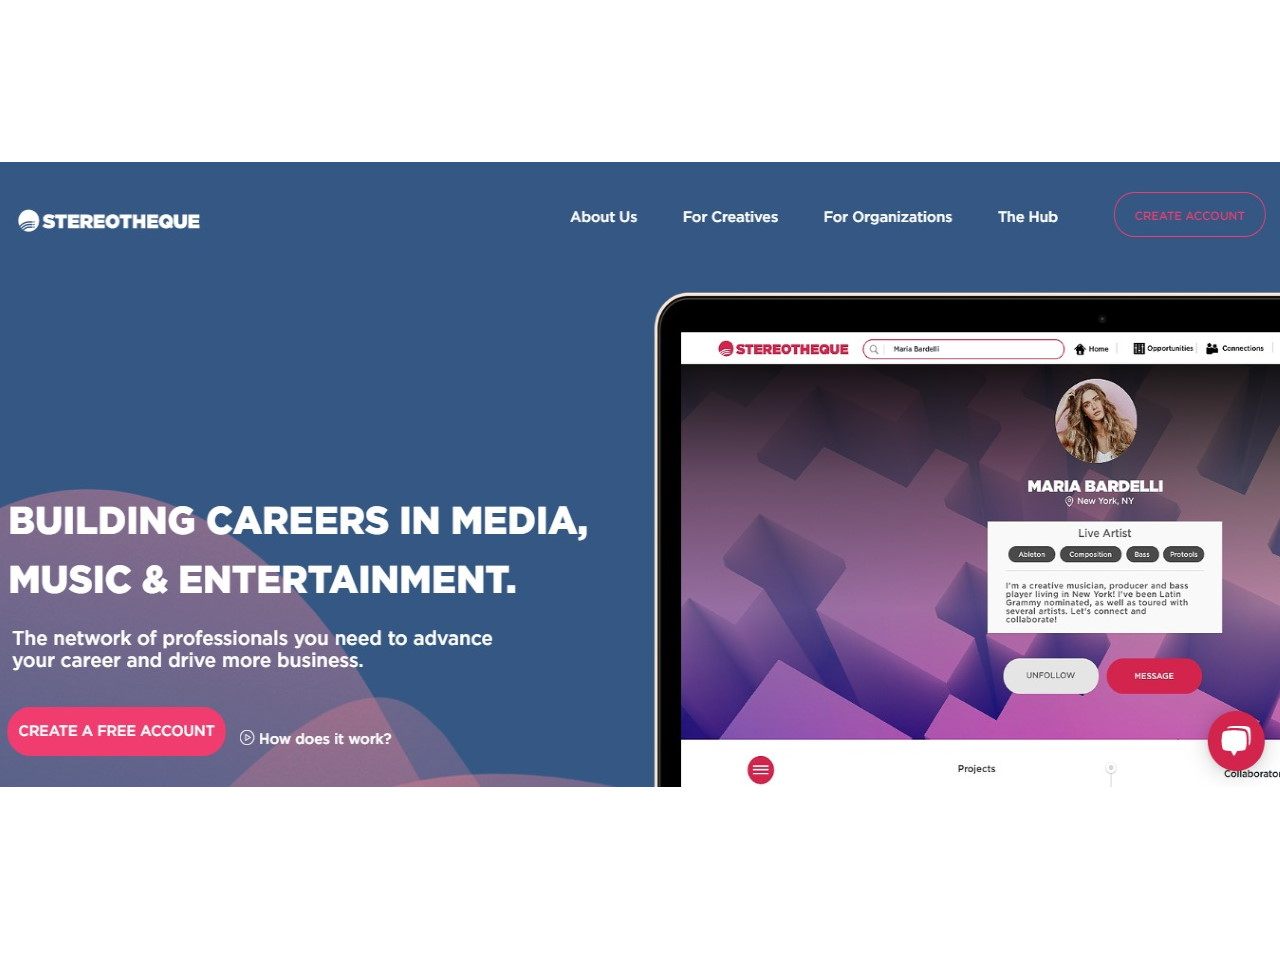 Stereotheque - The professional network for Music and Entertainment